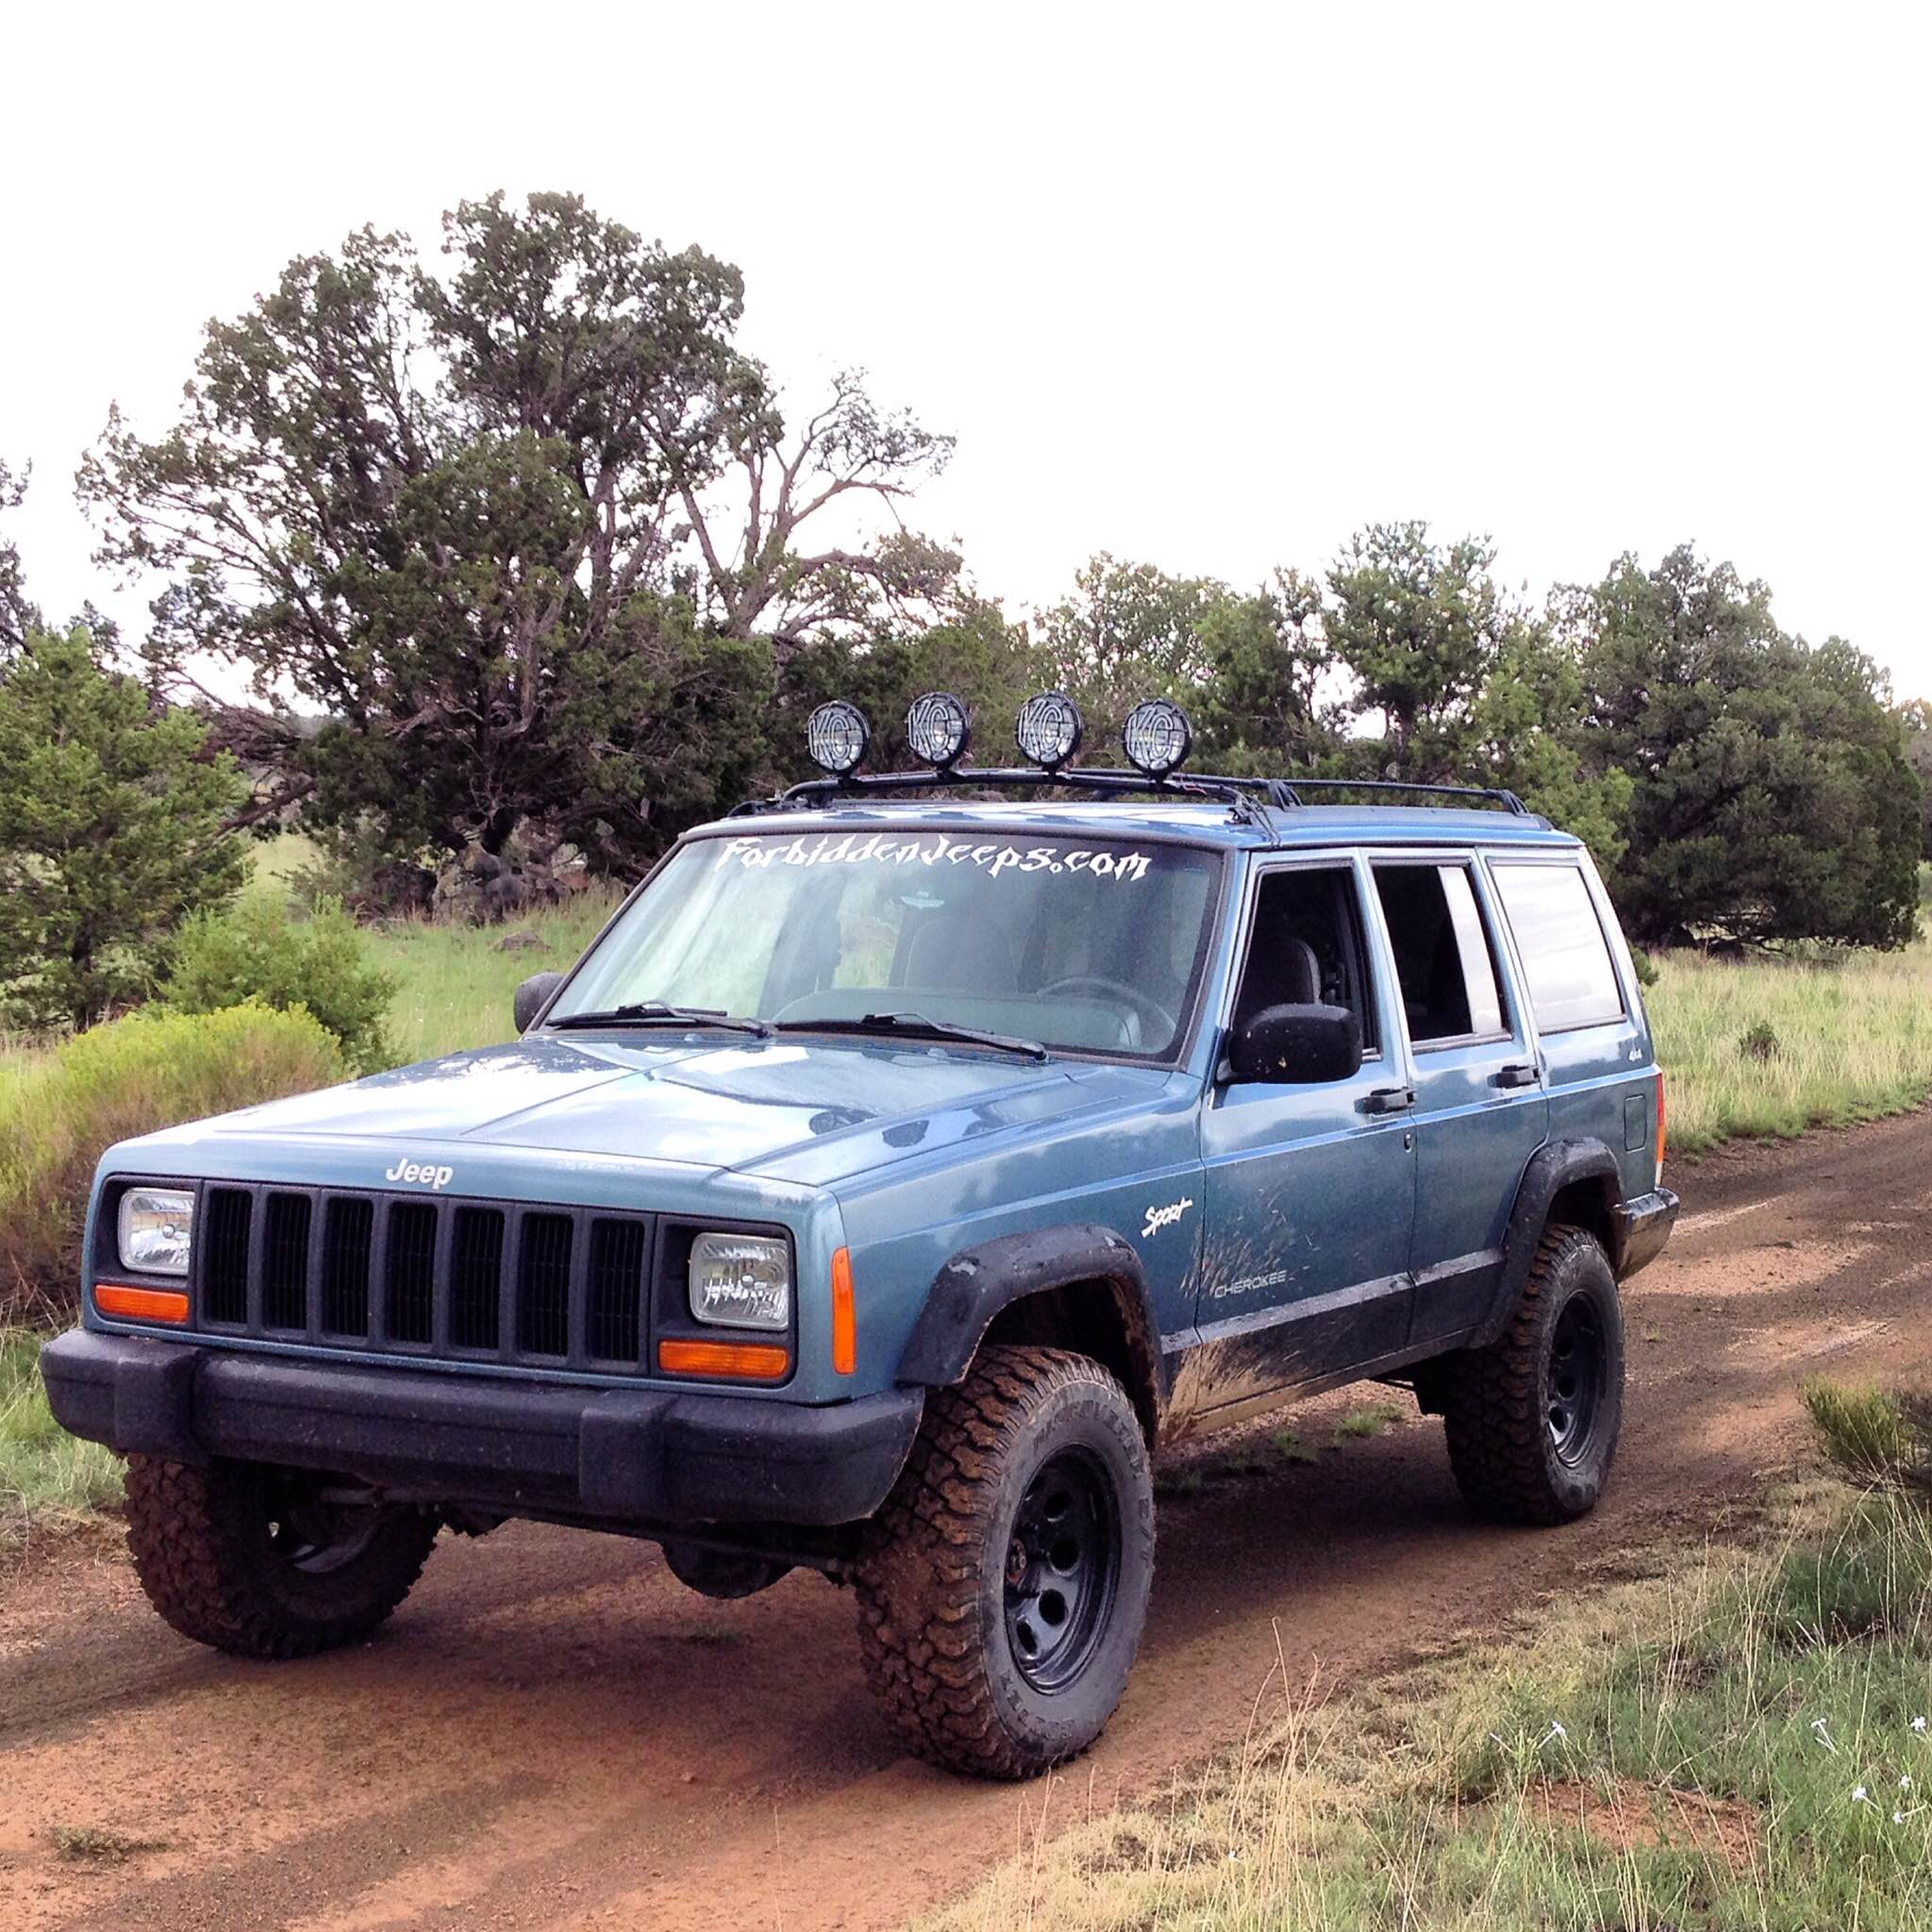 michael s 1998 jeep cherokee sport 4x4 rnr automotive blog. Black Bedroom Furniture Sets. Home Design Ideas